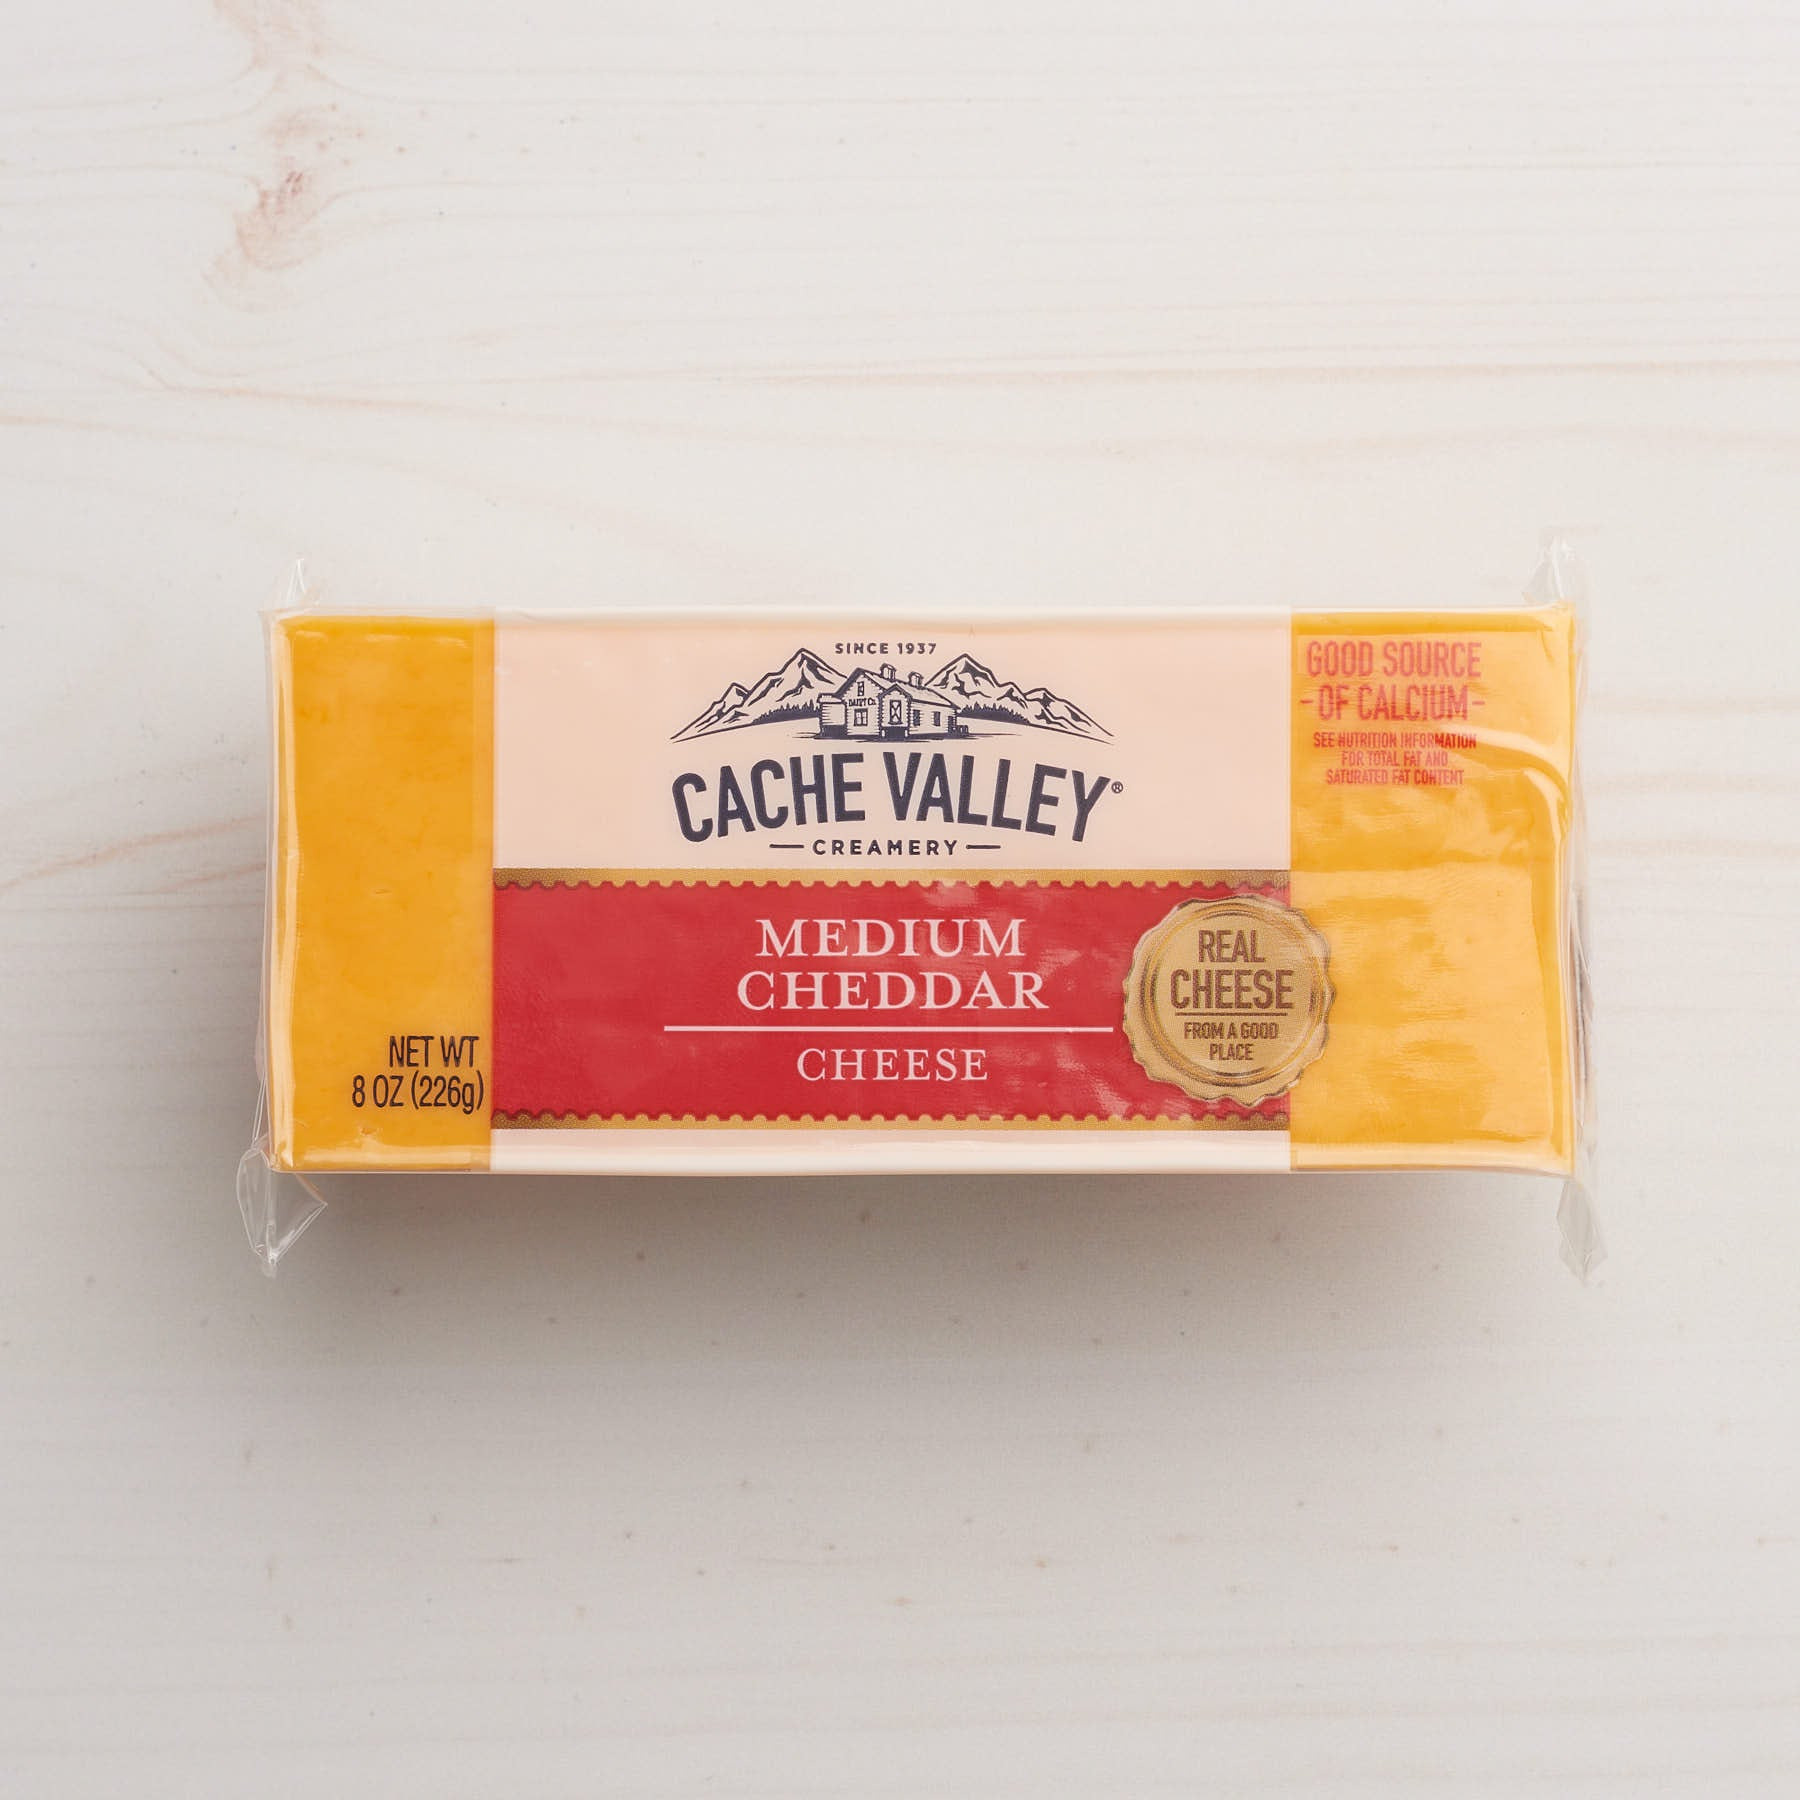 Image of Cache Valley Creamery Medium Cheddar Cheese